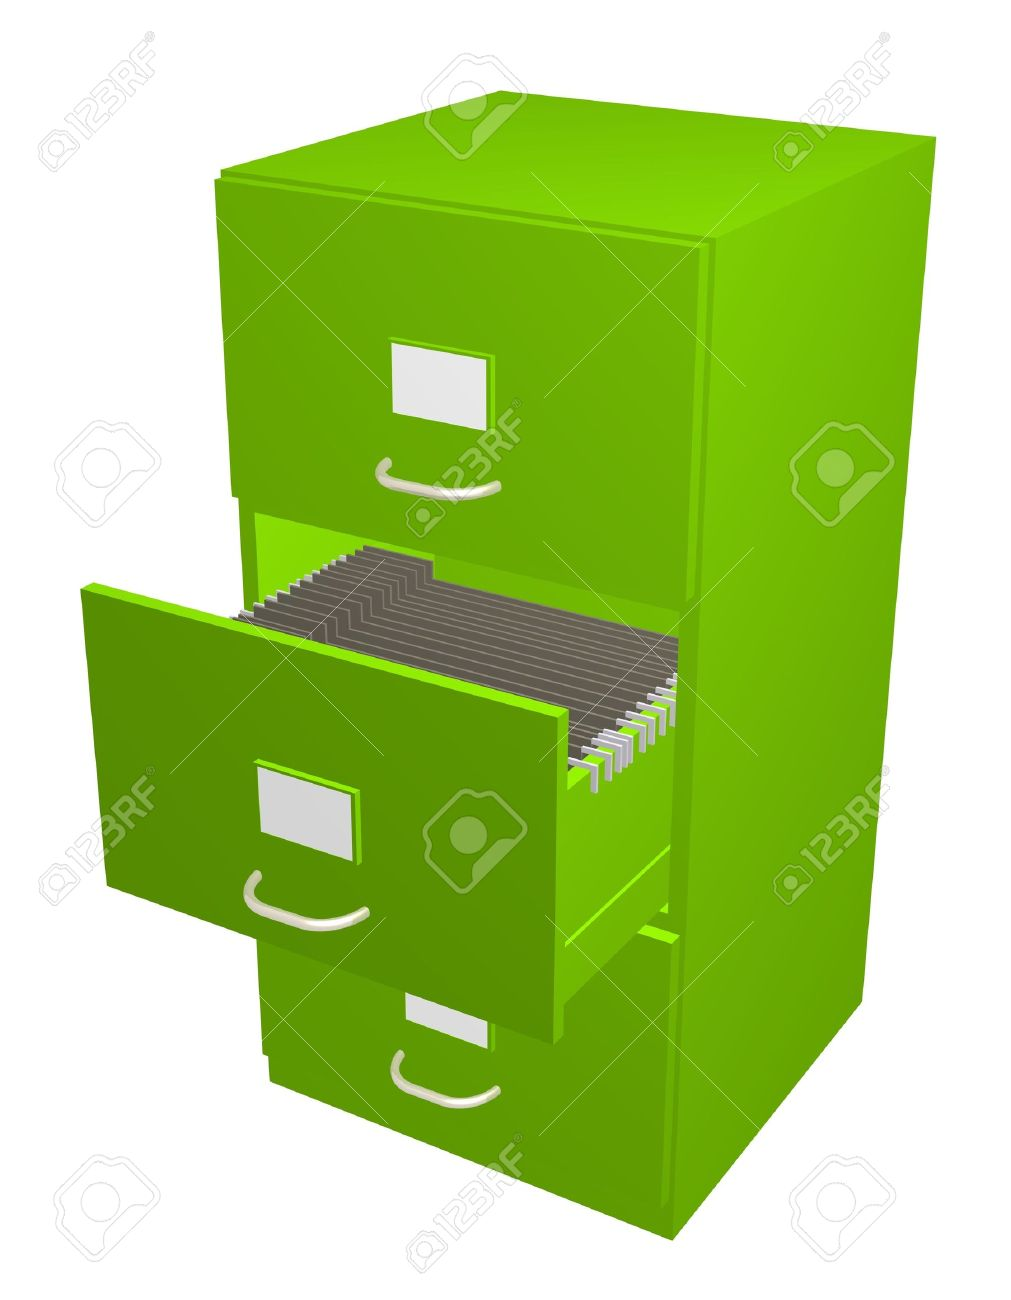 3D Illustration Of A Green Filing Cabinet With The Middle Draw Open Stock  Illustration   2729879